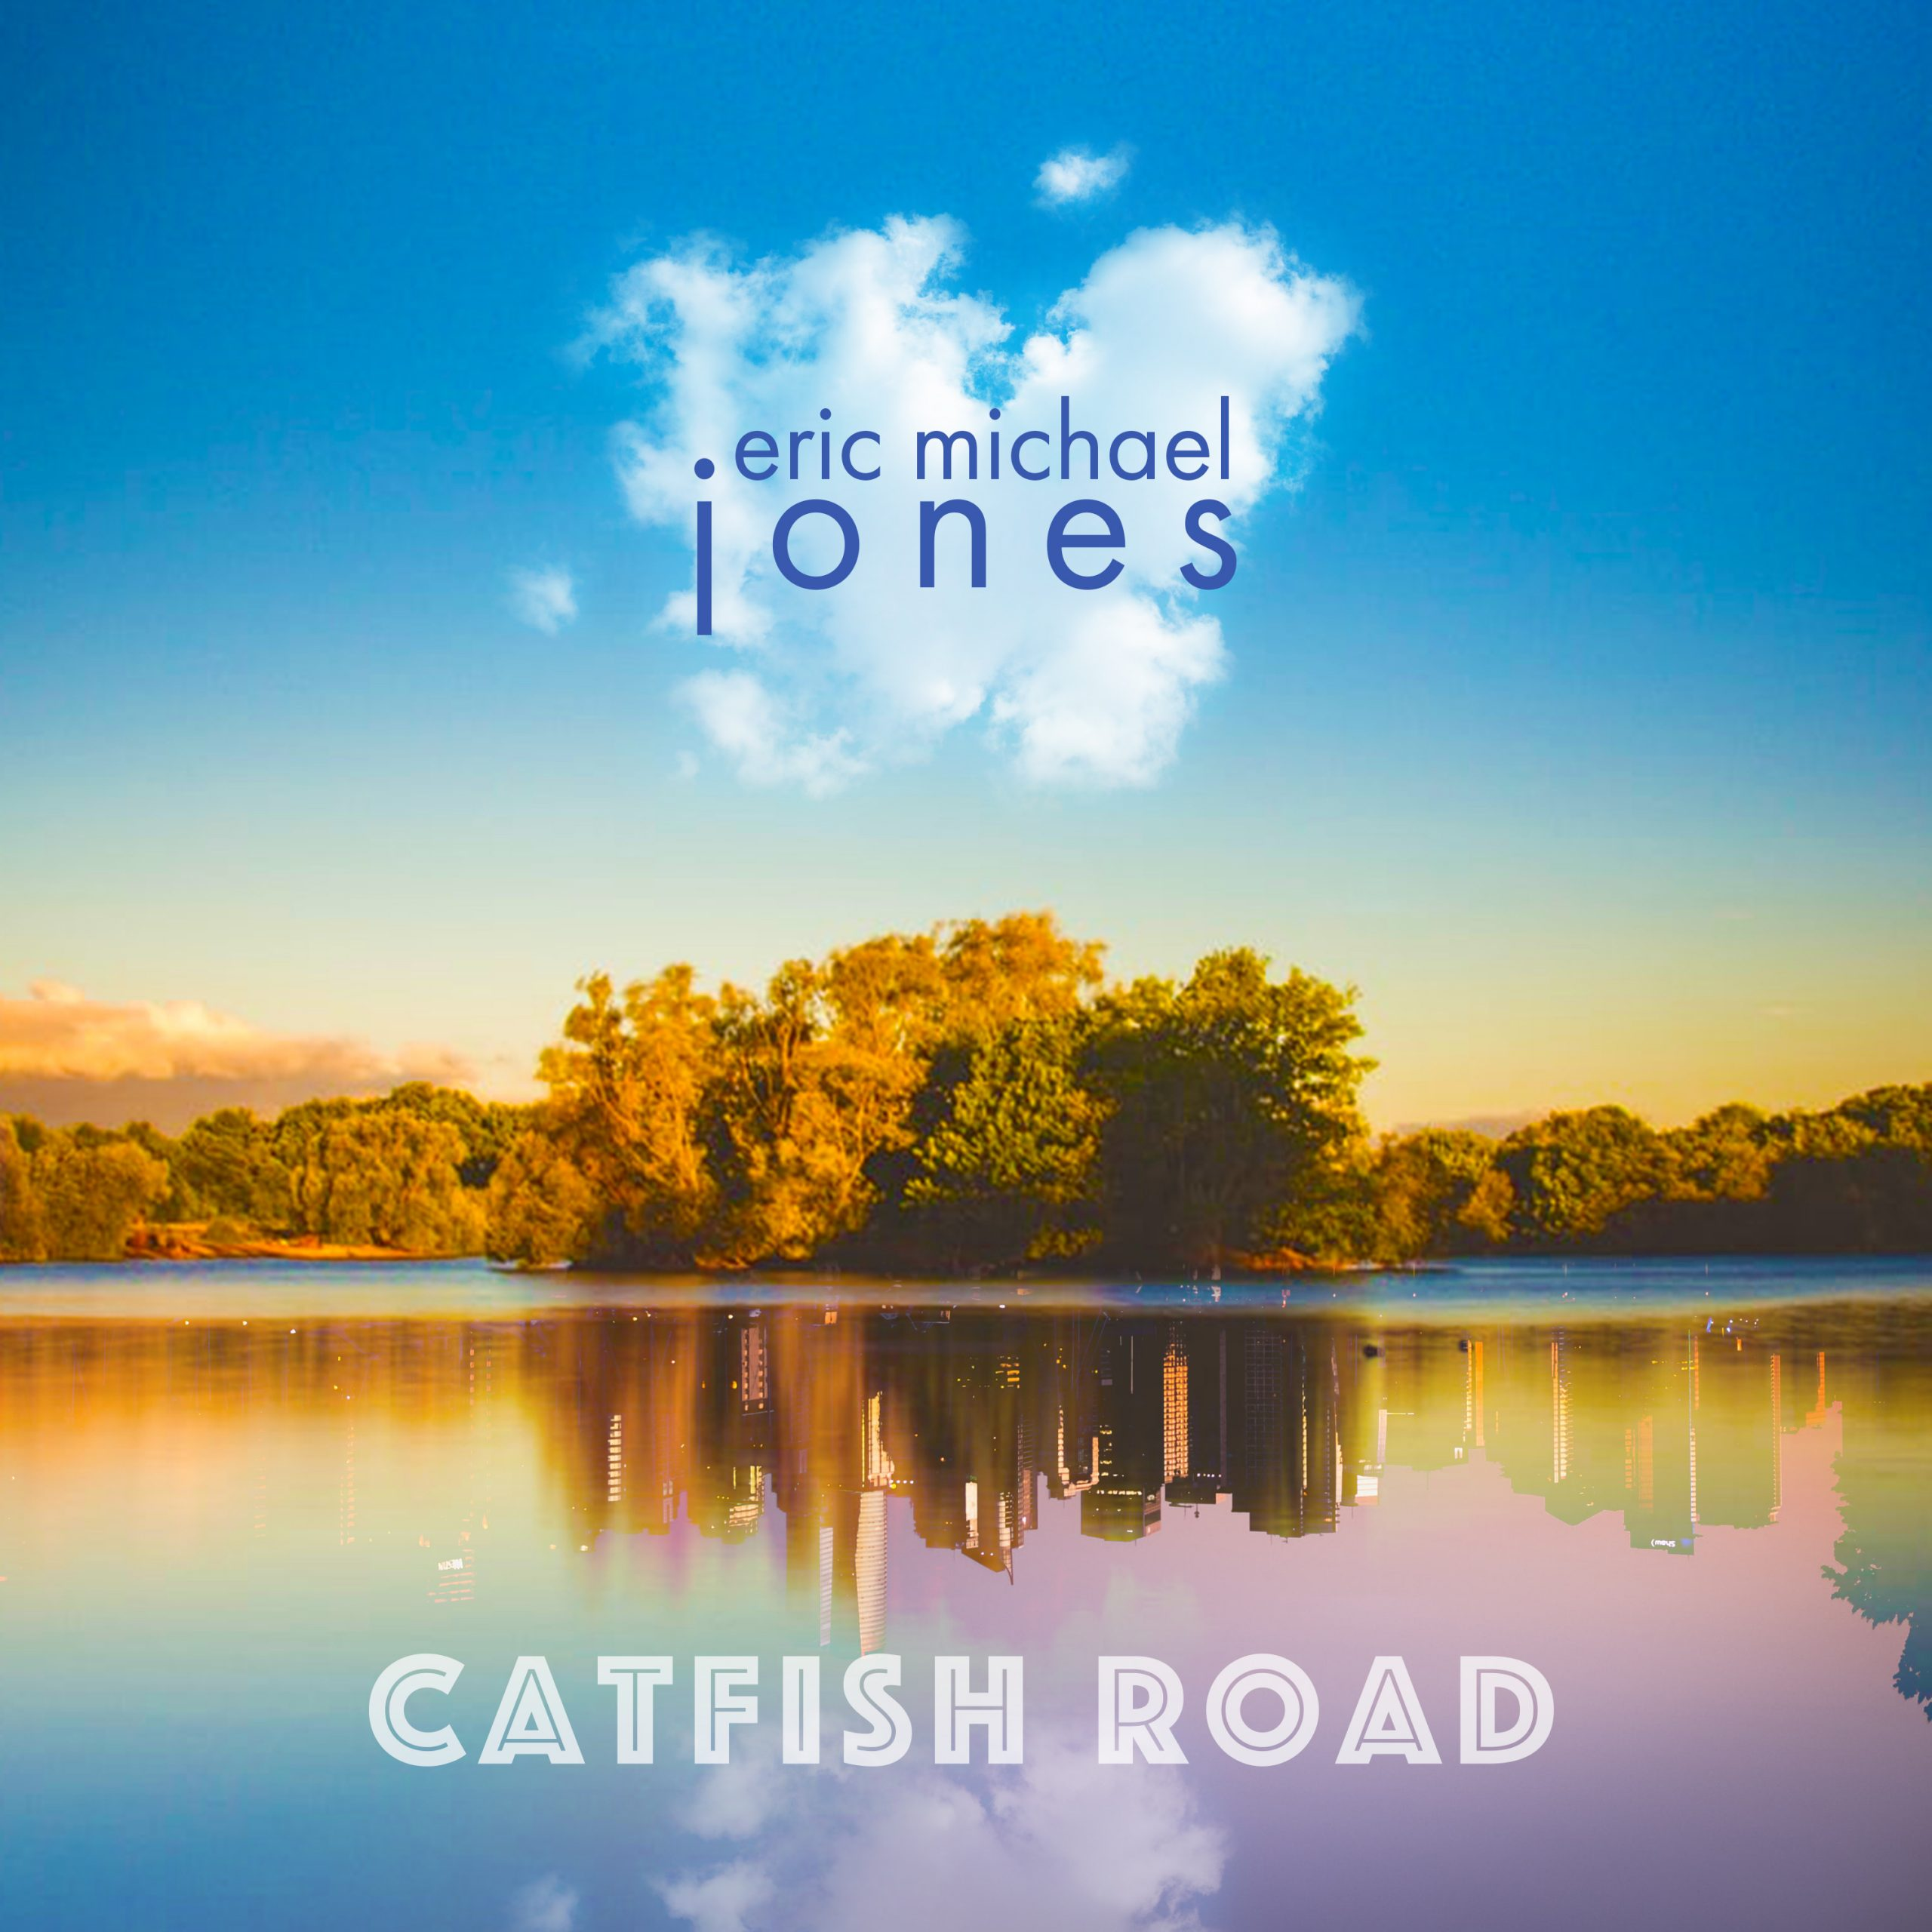 Cover art for Catfish Road, showing a lie where the trees are reflected as a city